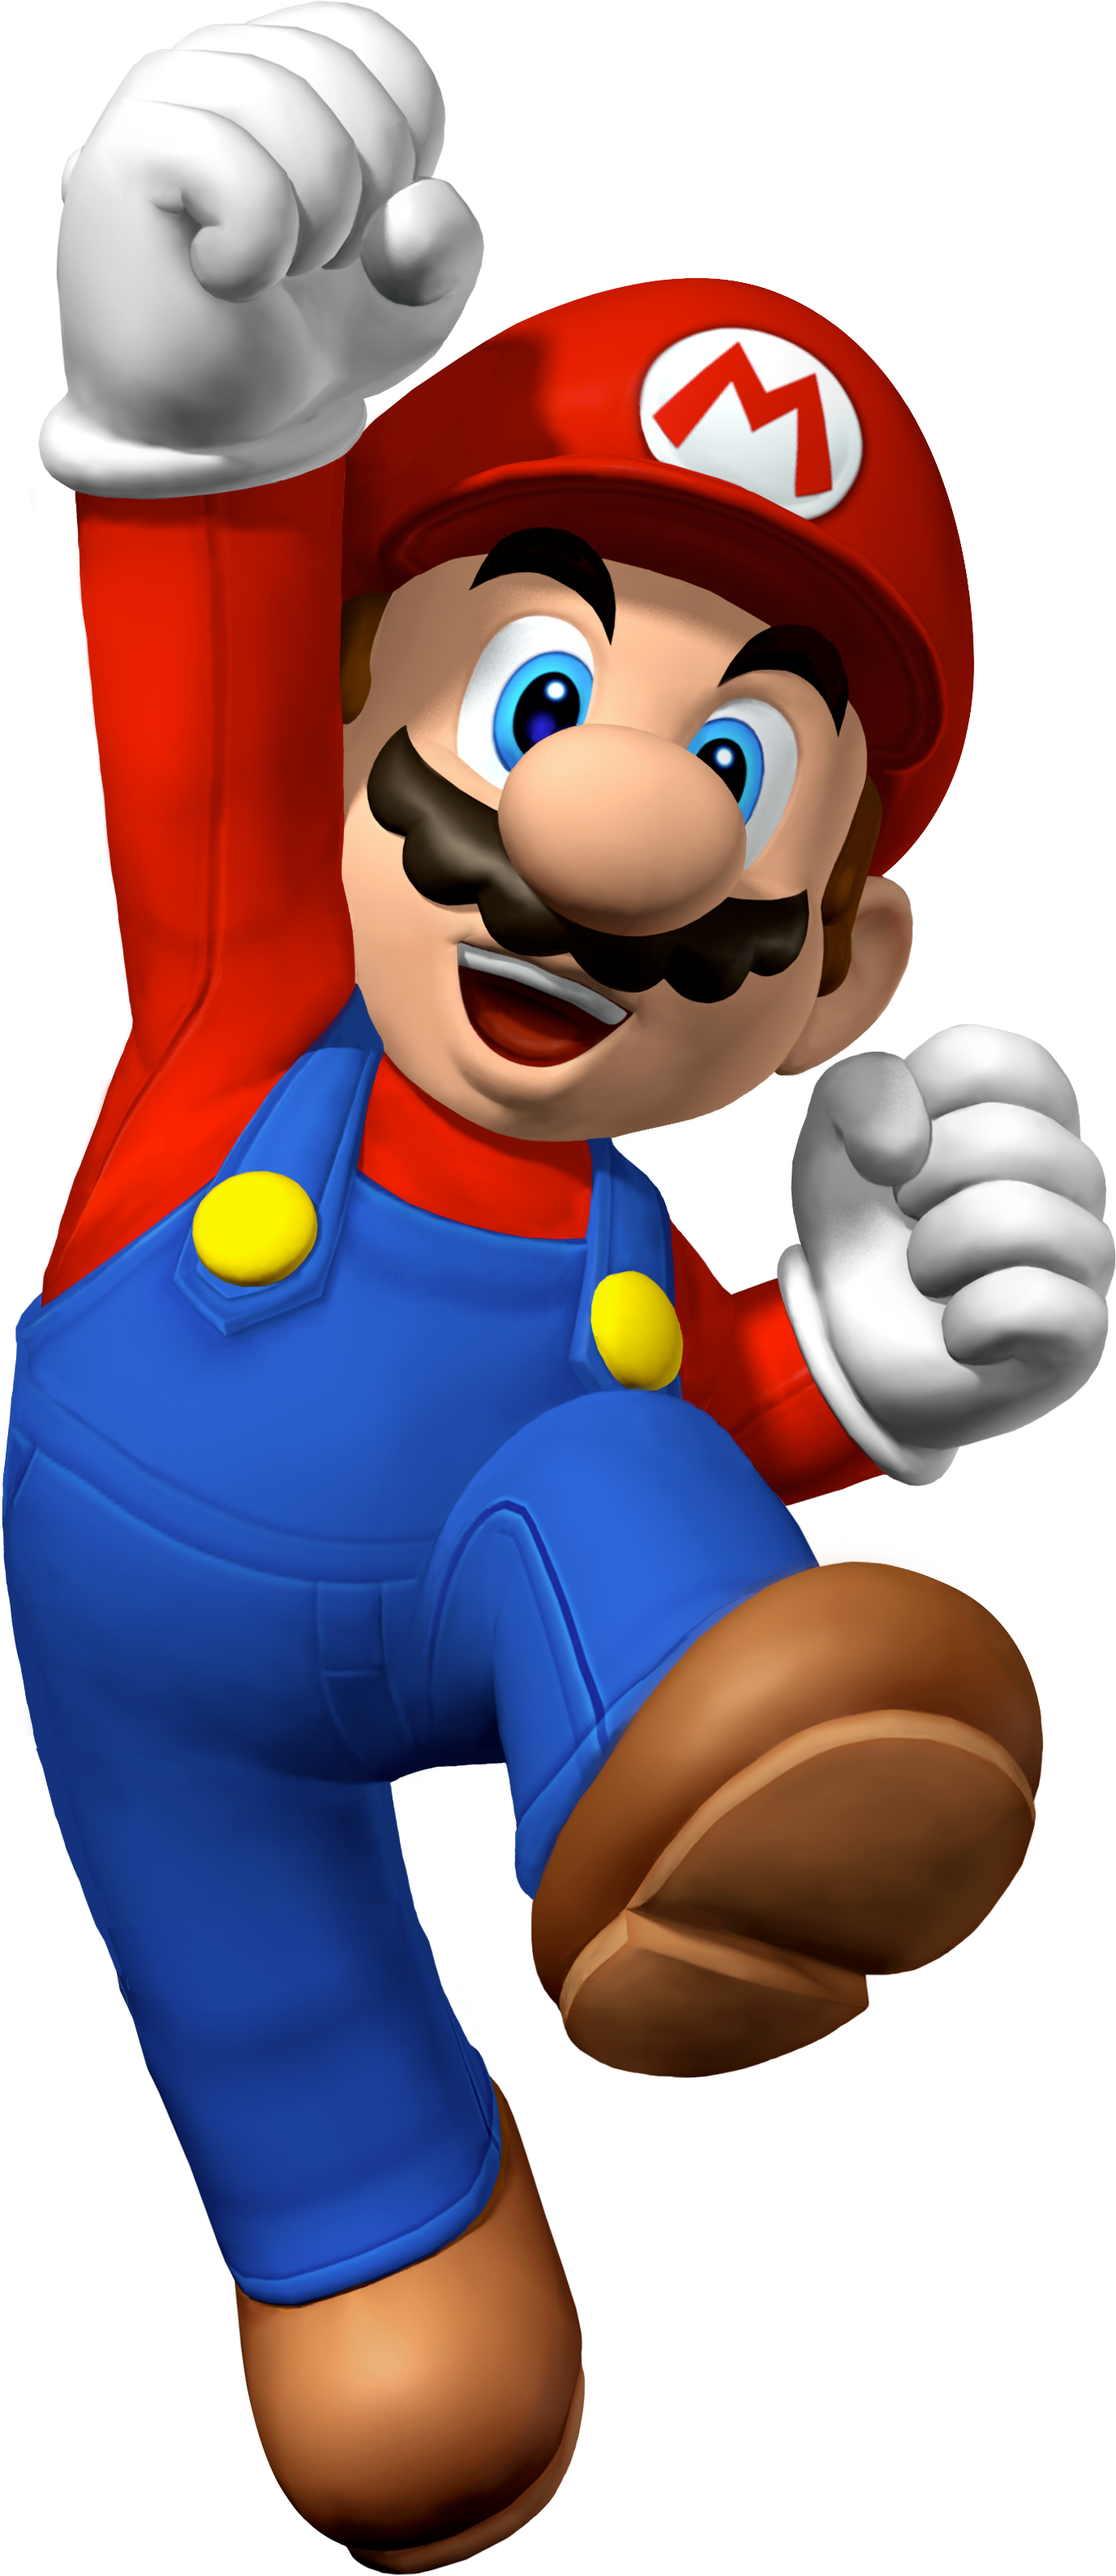 Mega Mario (New Super Mario B